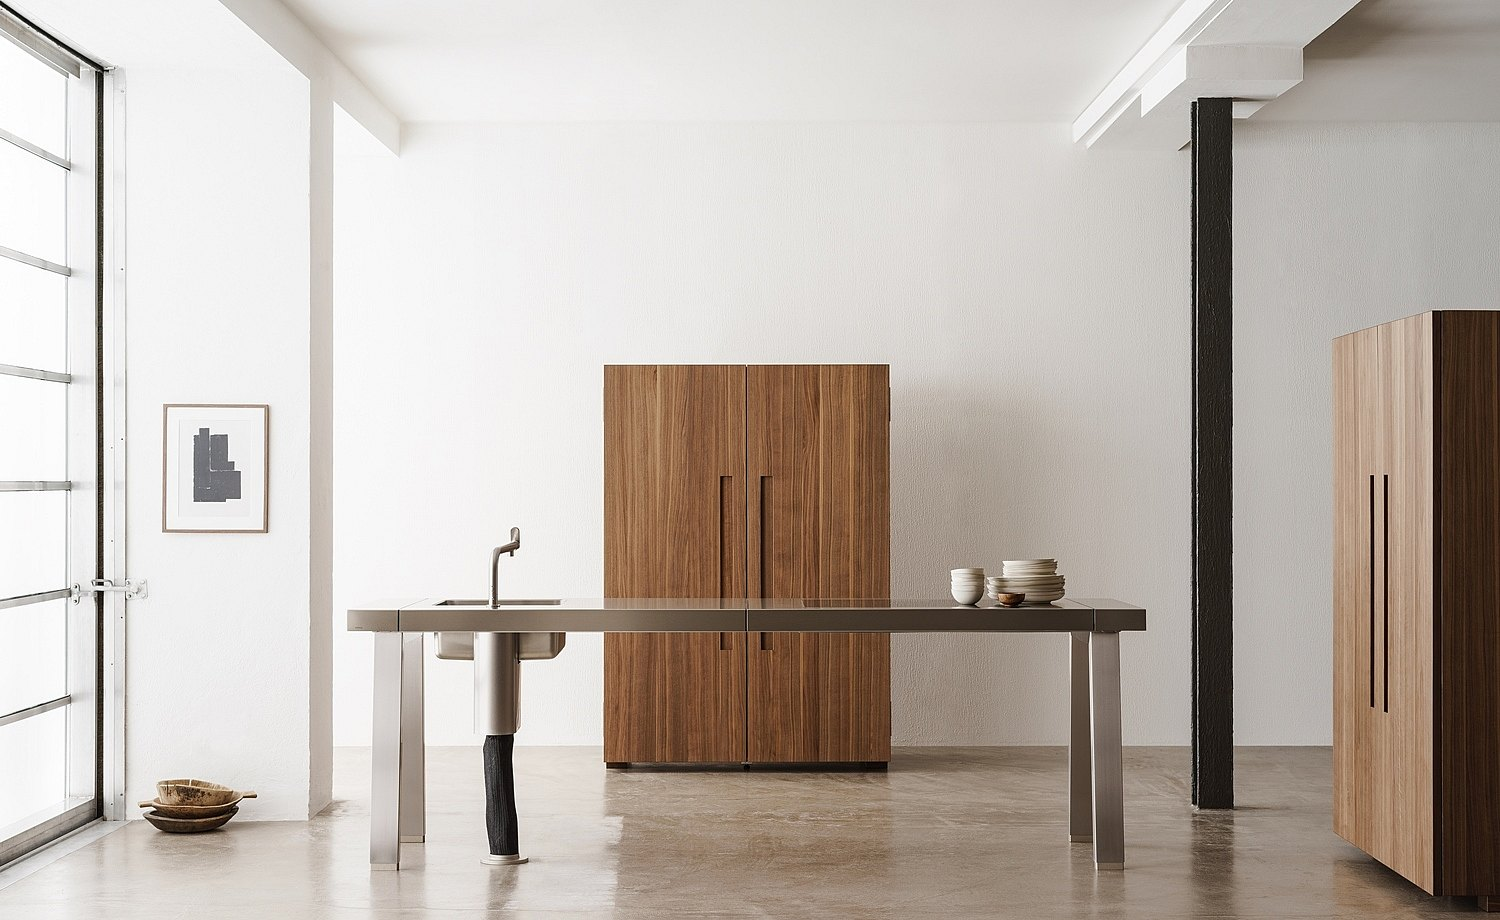 Workbench with water point and stove, equipment cabinet and tool cabinet – purism at its best, yet everything you need